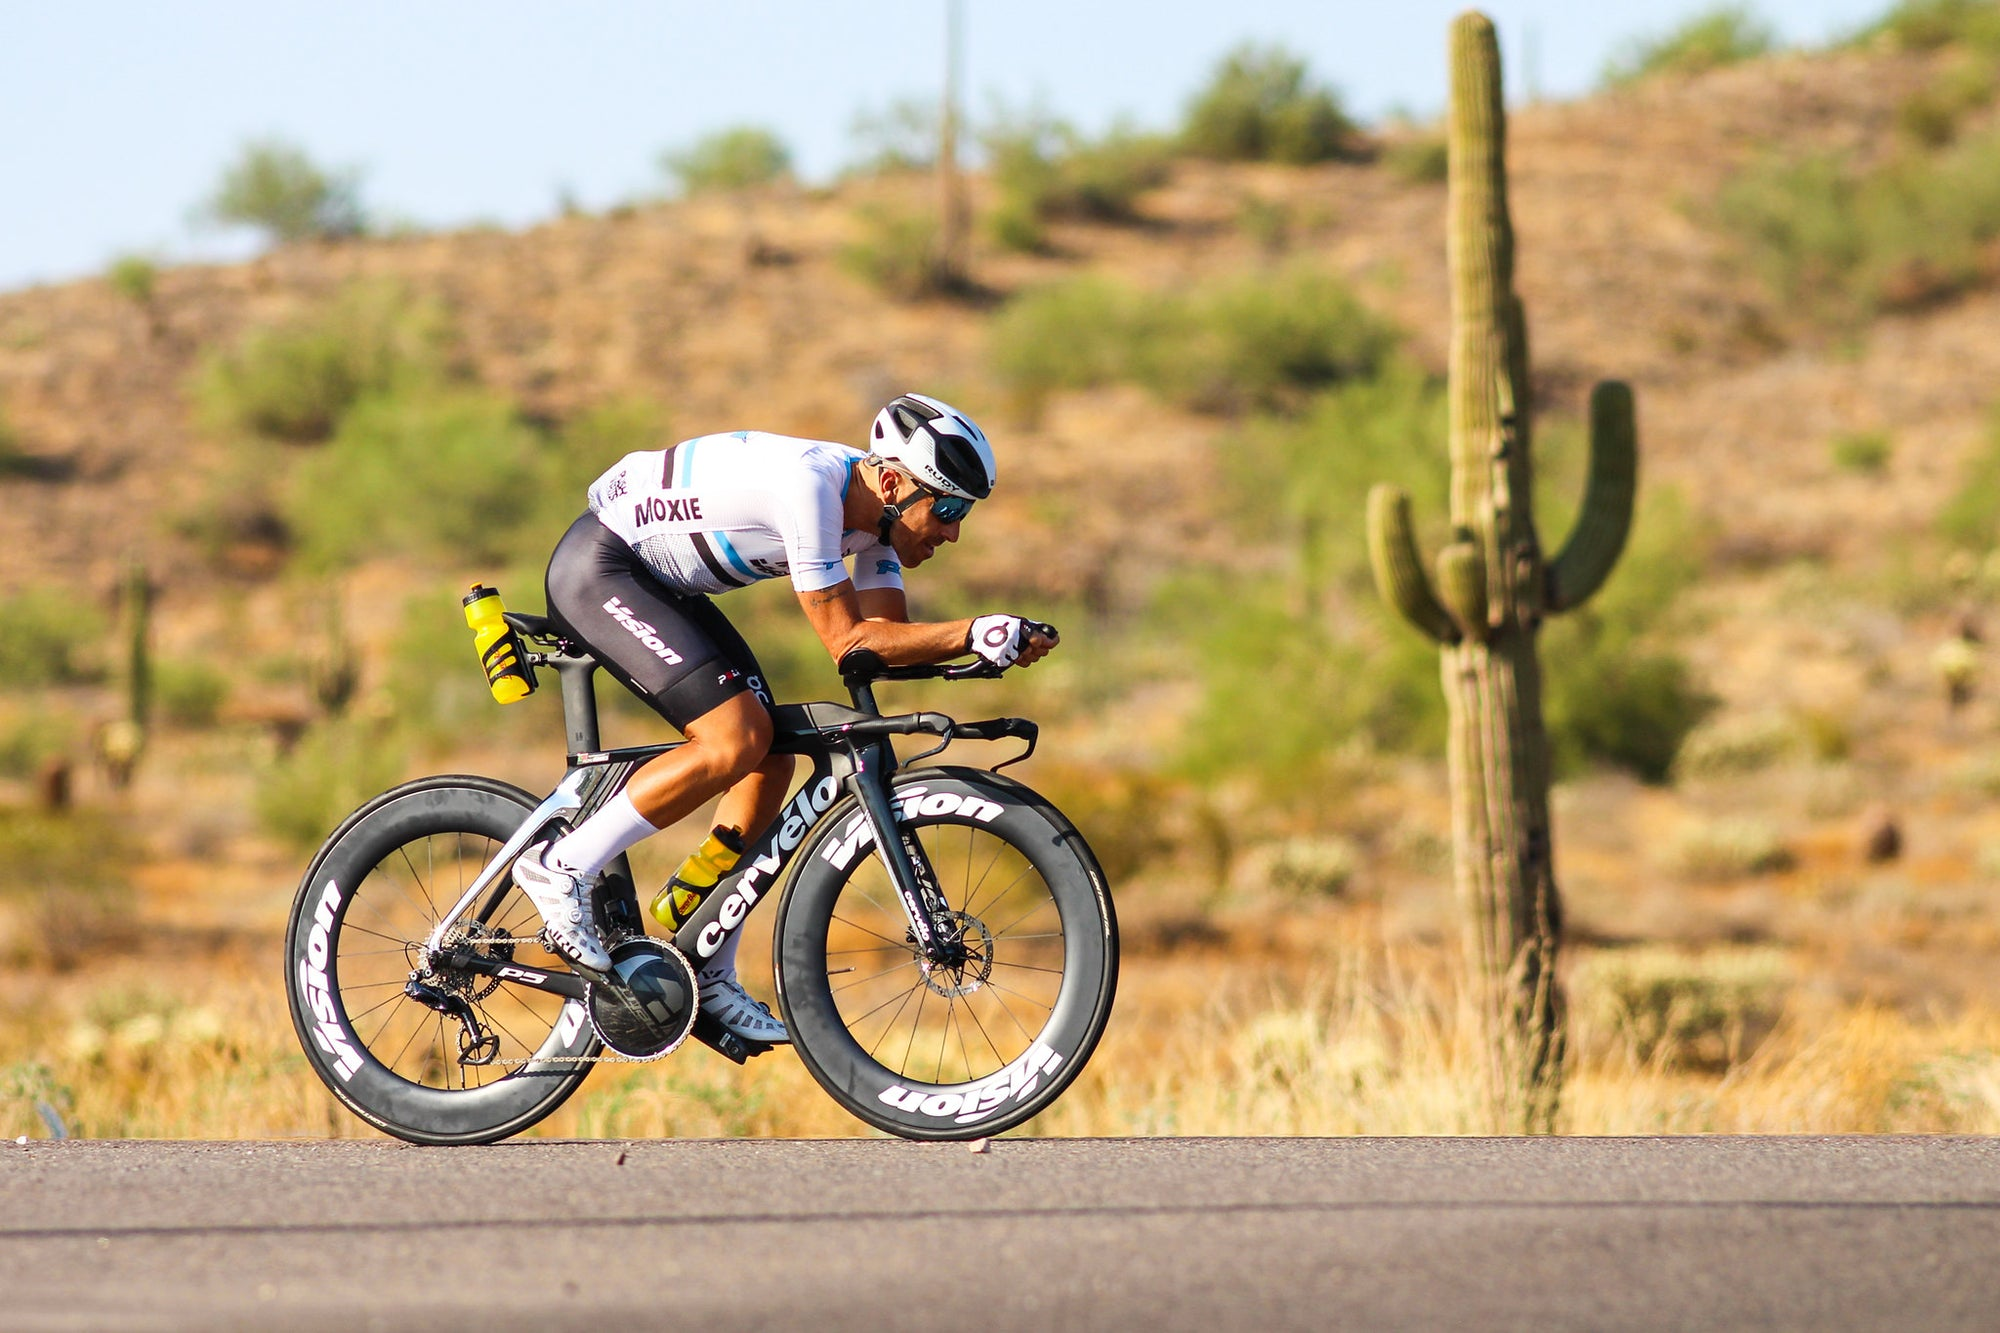 3 Tips For First Time Triathletes from Swiftwick Athlete Pedro Gomes